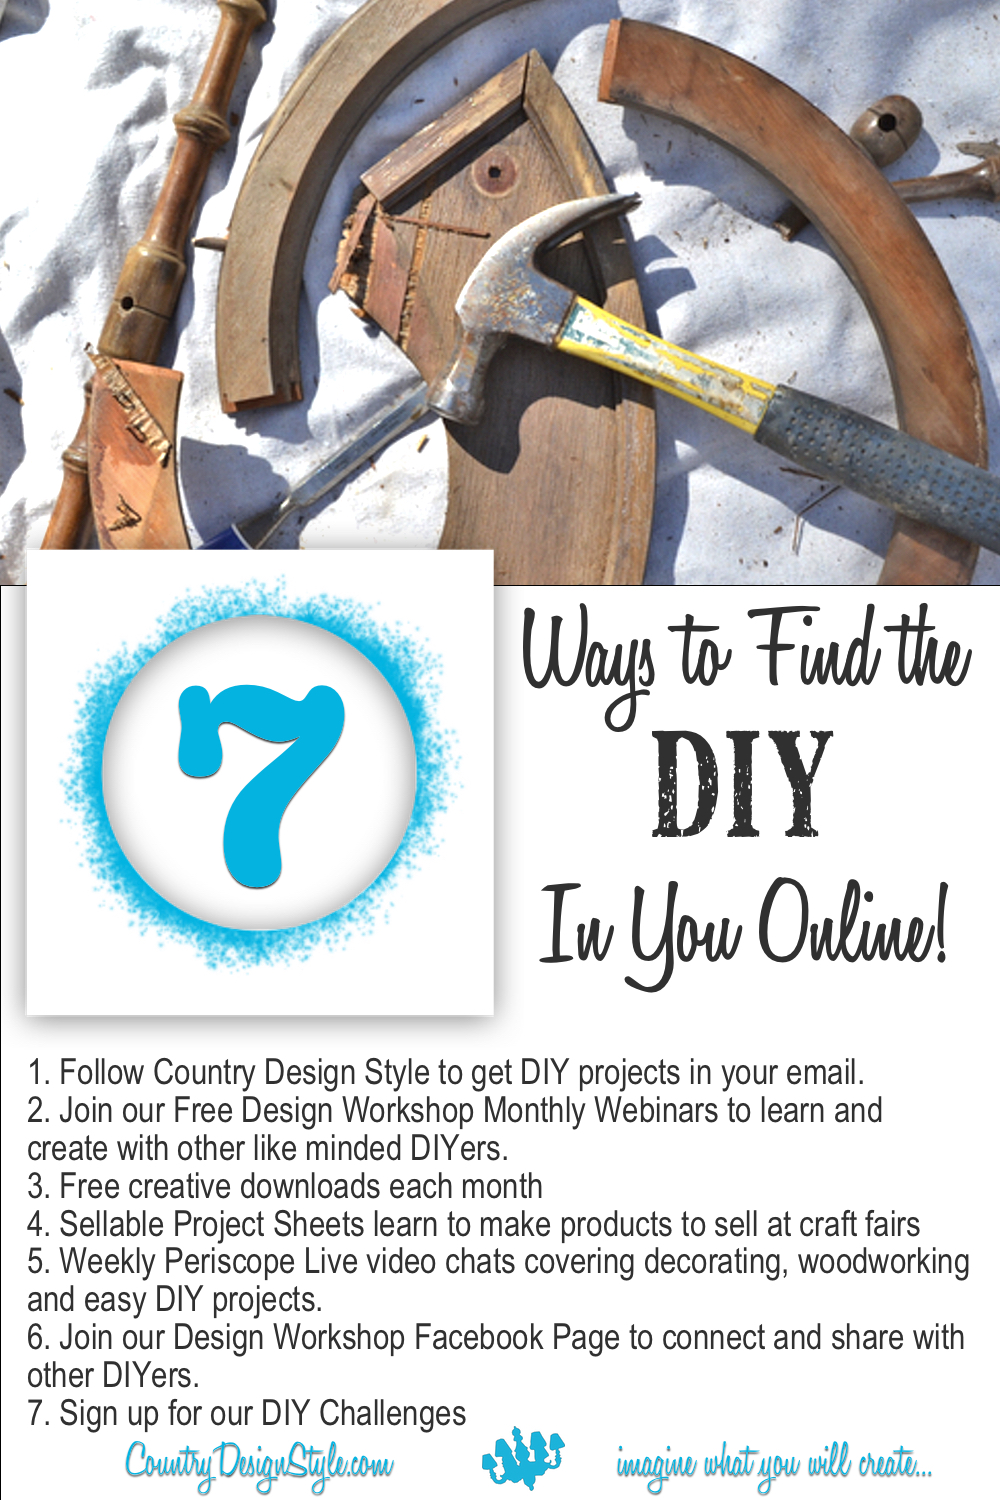 7 ways to find the diy in you online | Country Design Style | countrydesignstyle.com